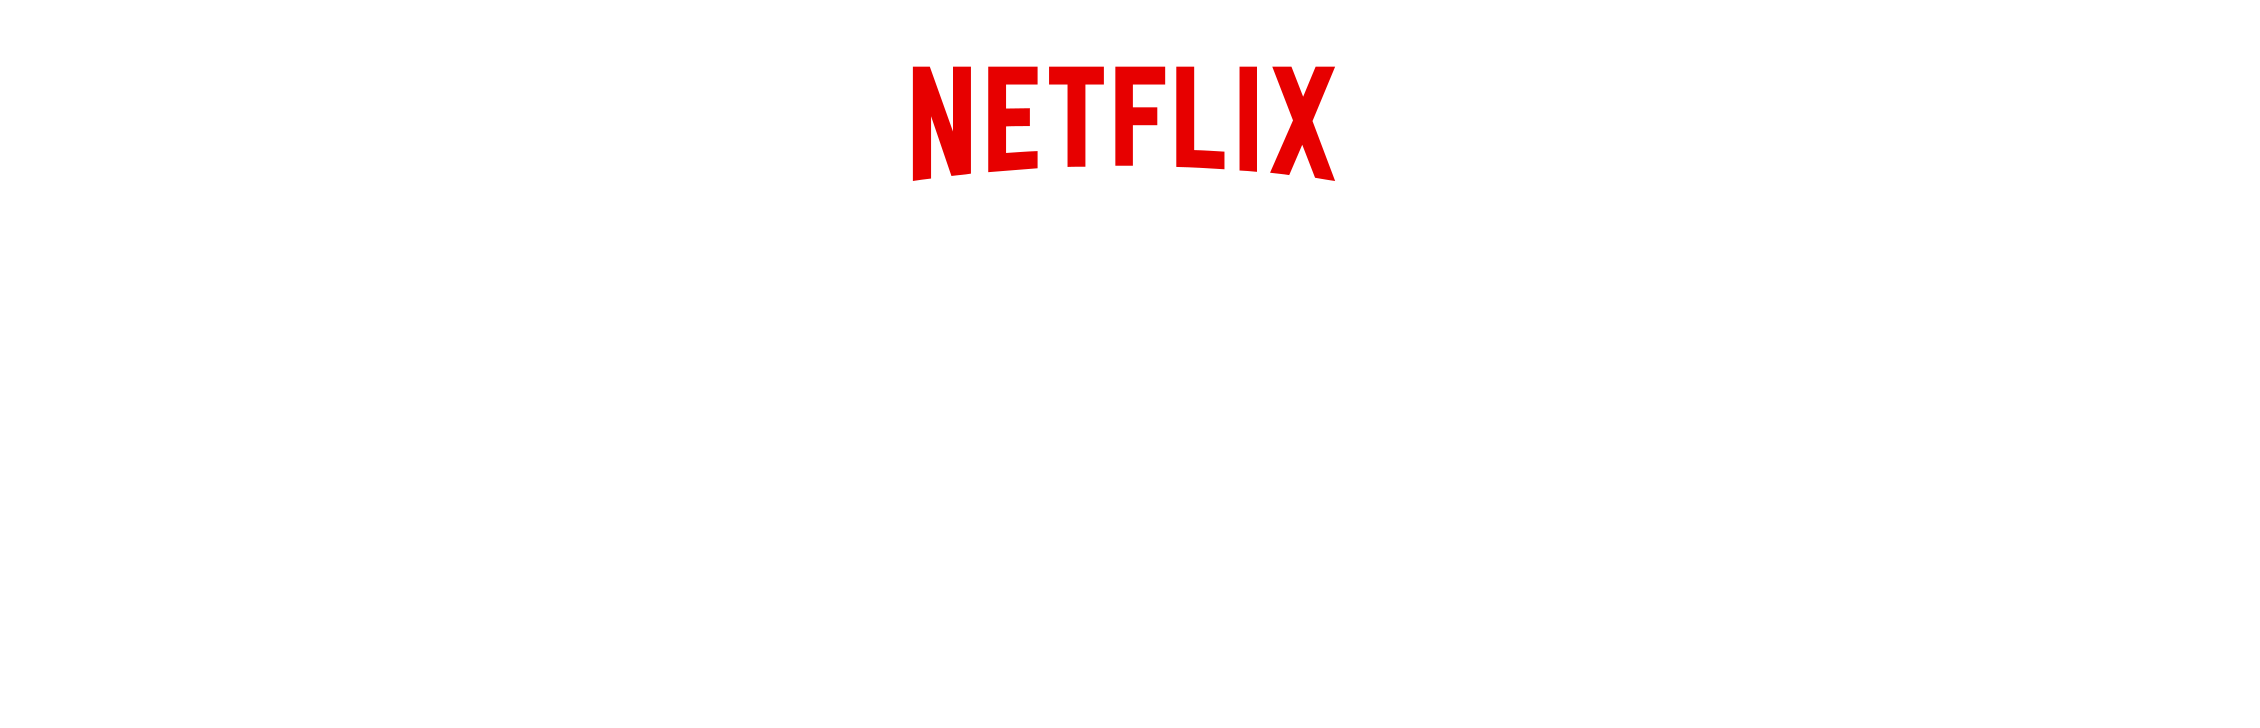 Netflix Playlist logo